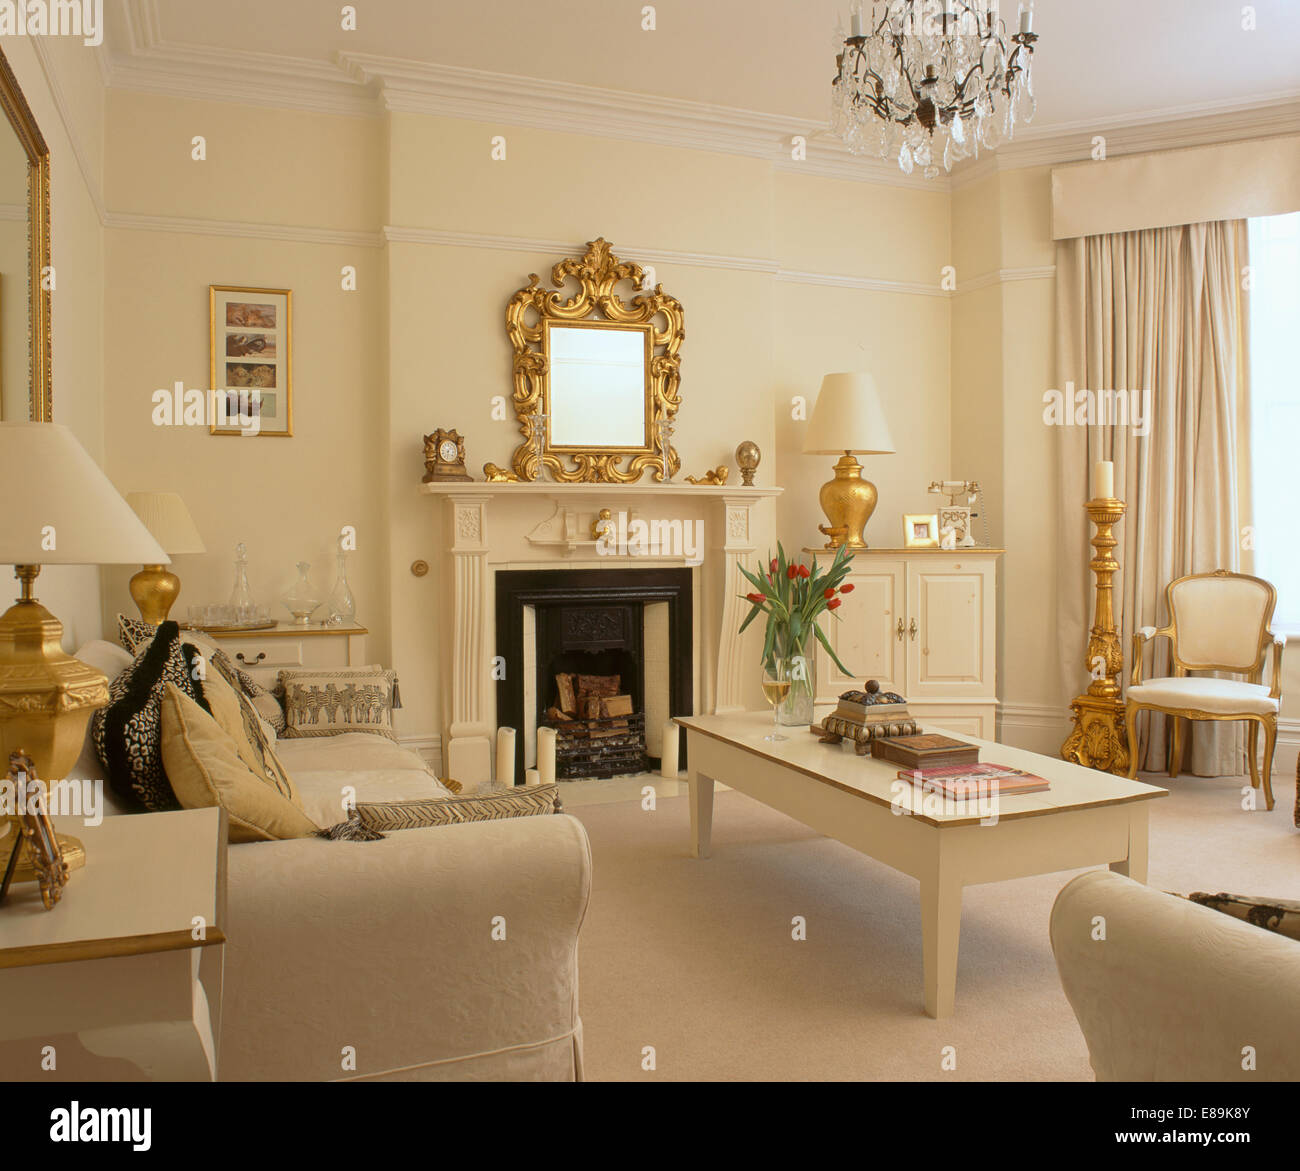 Cream Living Room With Cream Table And Sofas And Gold Accessories Stock Photo Royalty Free